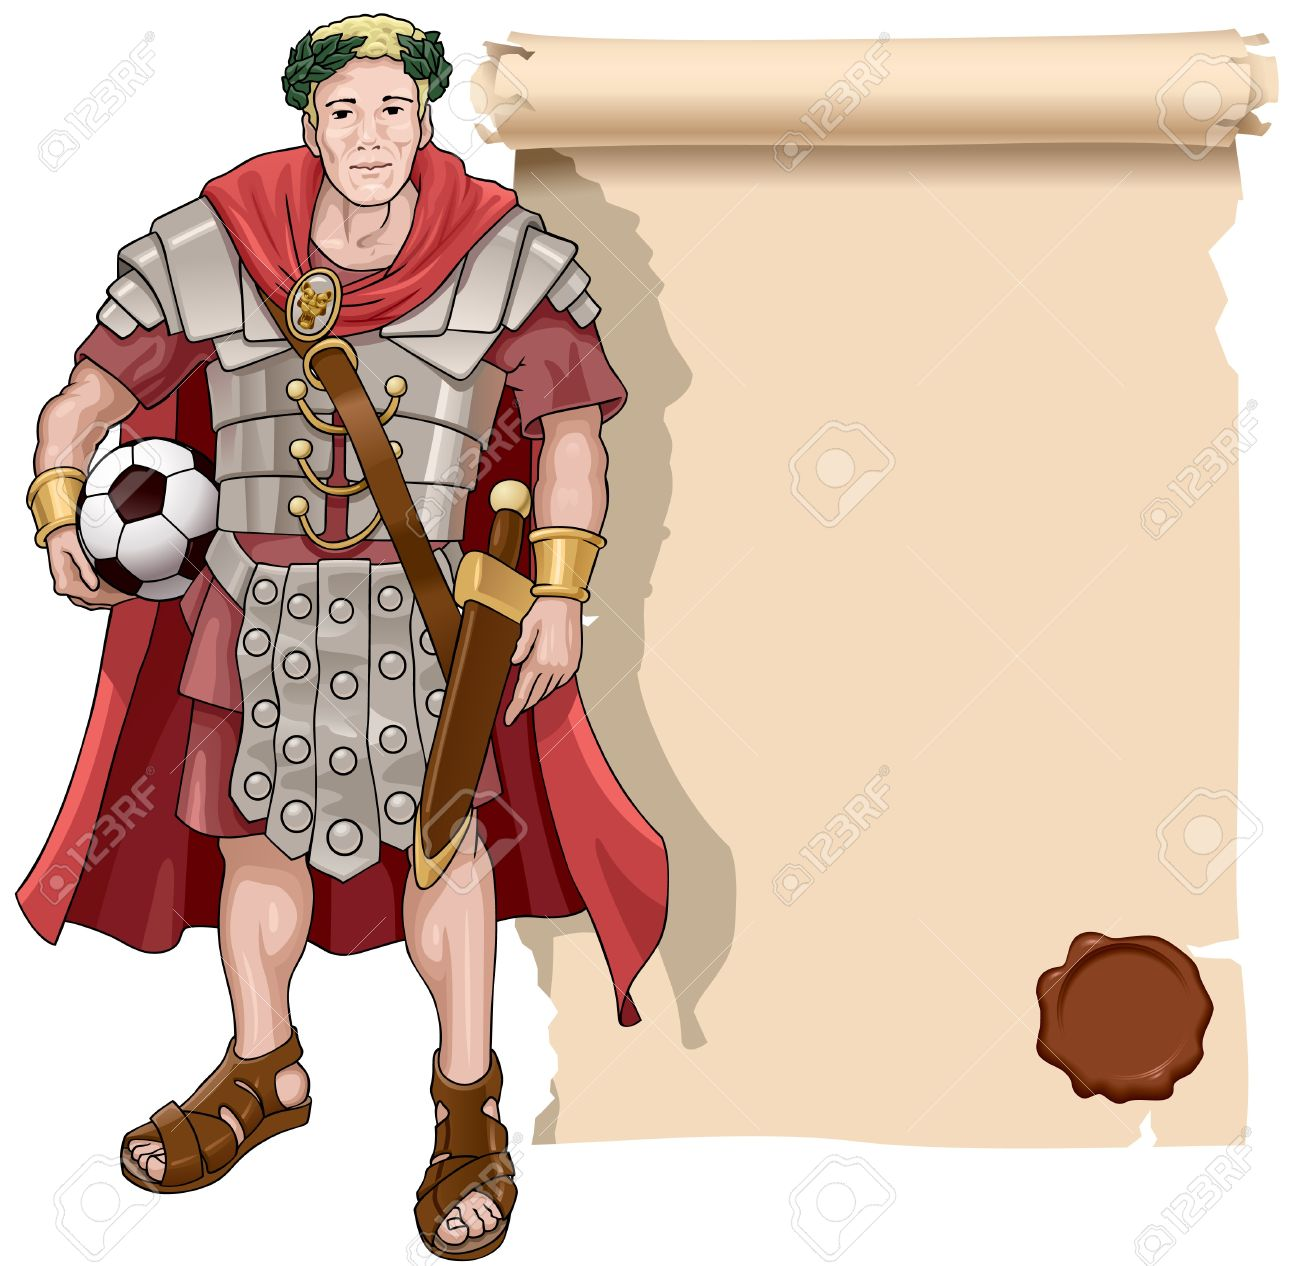 Vector illustration of the roman soldier with a football and background a scroll. Stock Vector - 9817421